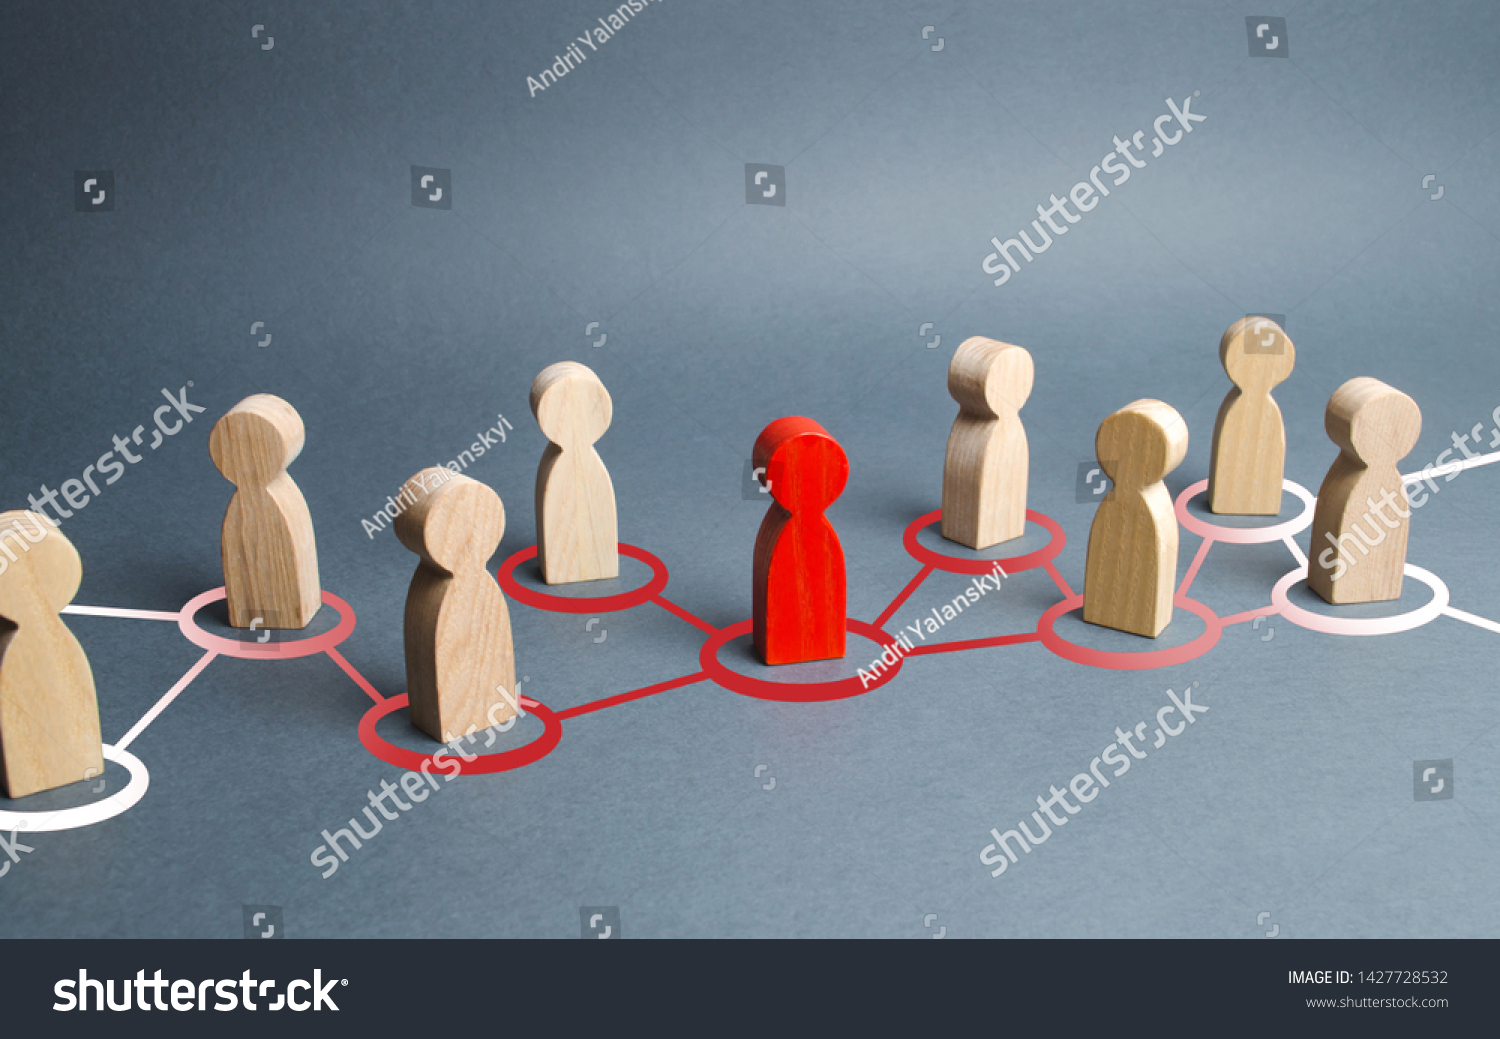 The red human figure extends its influence to the neighboring figures. Spreading ideas and thoughts, recruiting new members. Infection of other people, zero patient. Leader and leadership, new team. #1427728532